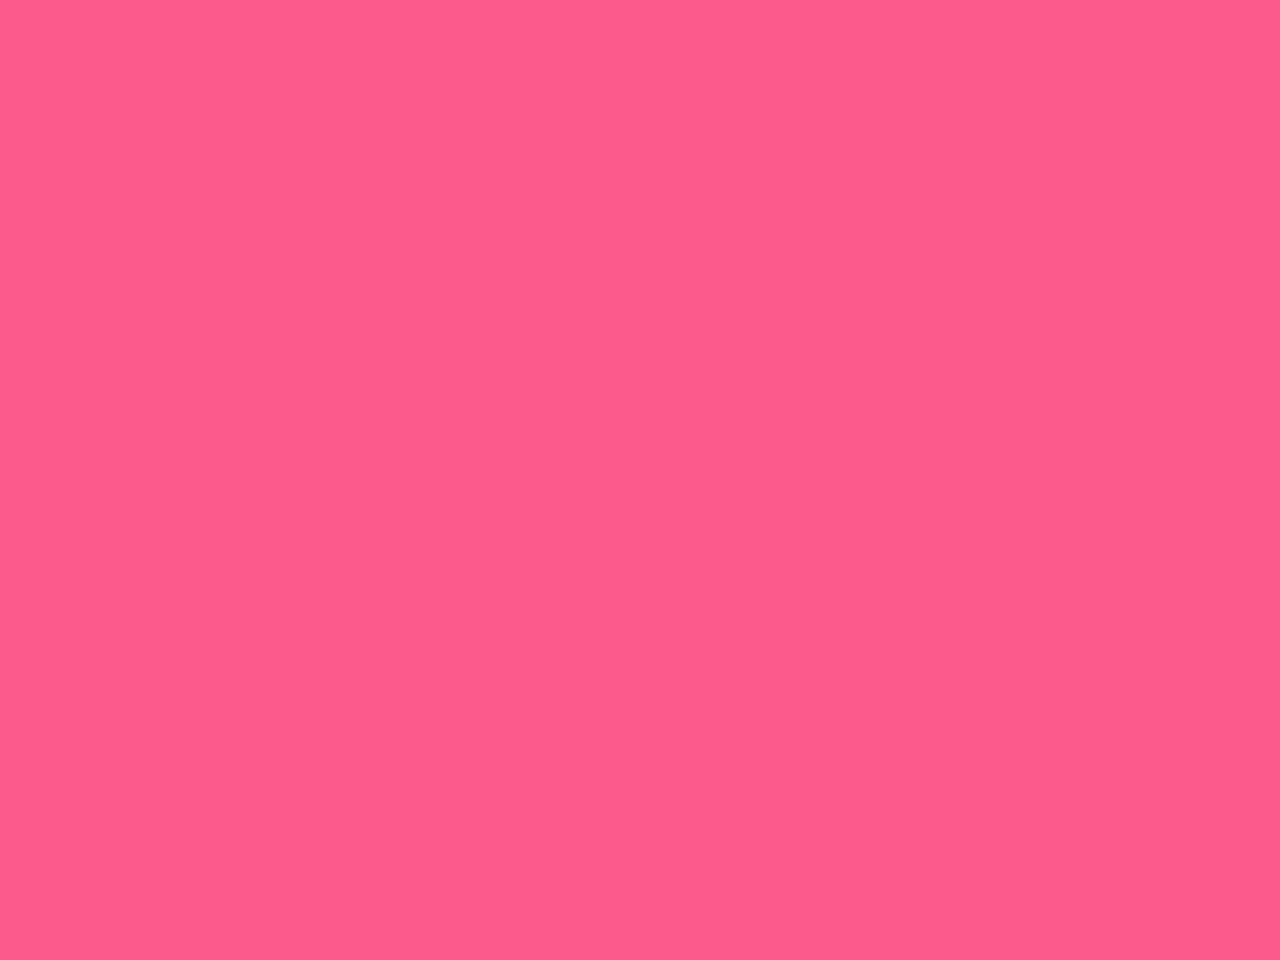 1280x960 Strawberry Solid Color Background